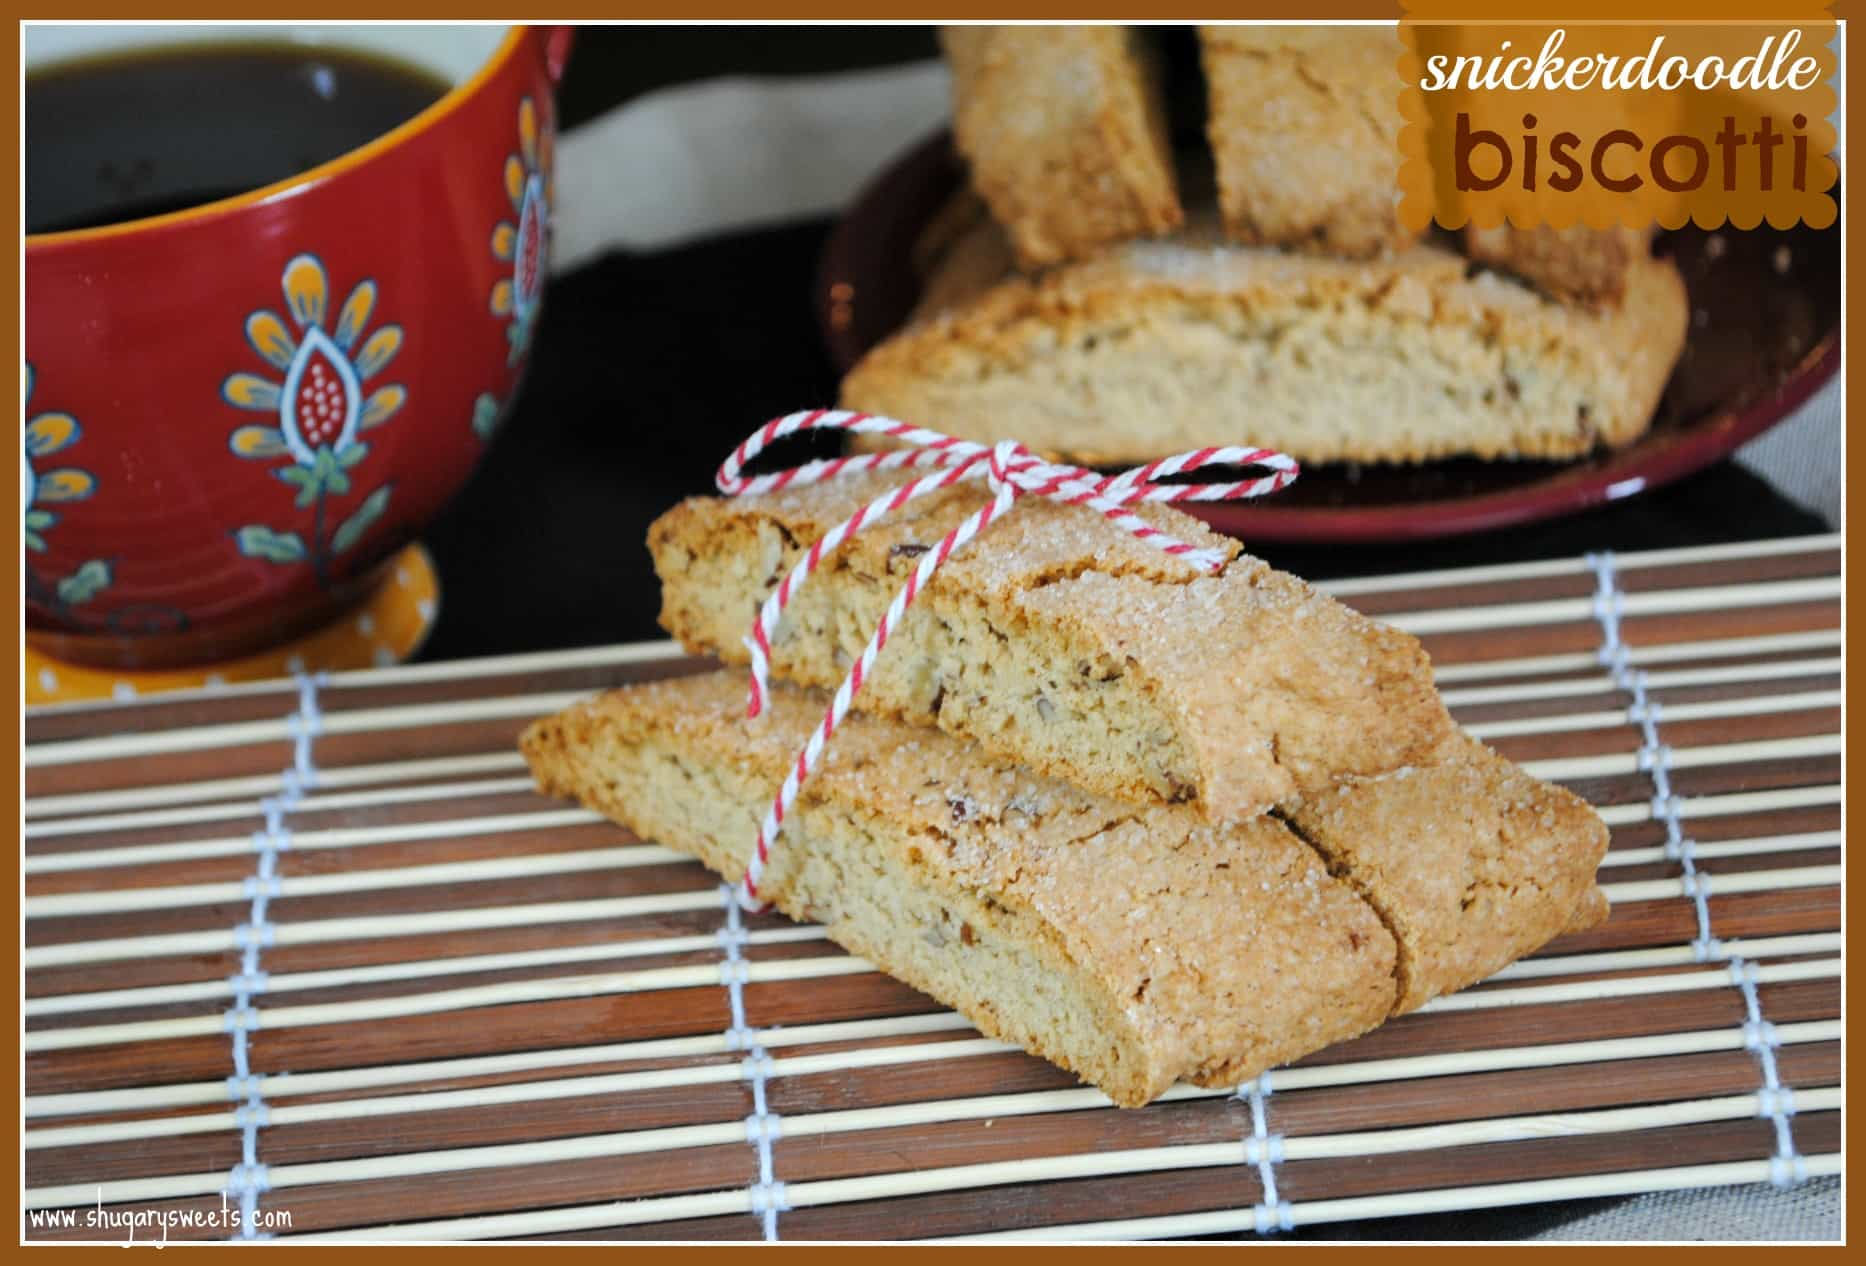 Snickerdoodle Biscotti : our treat while the kids open presents ...